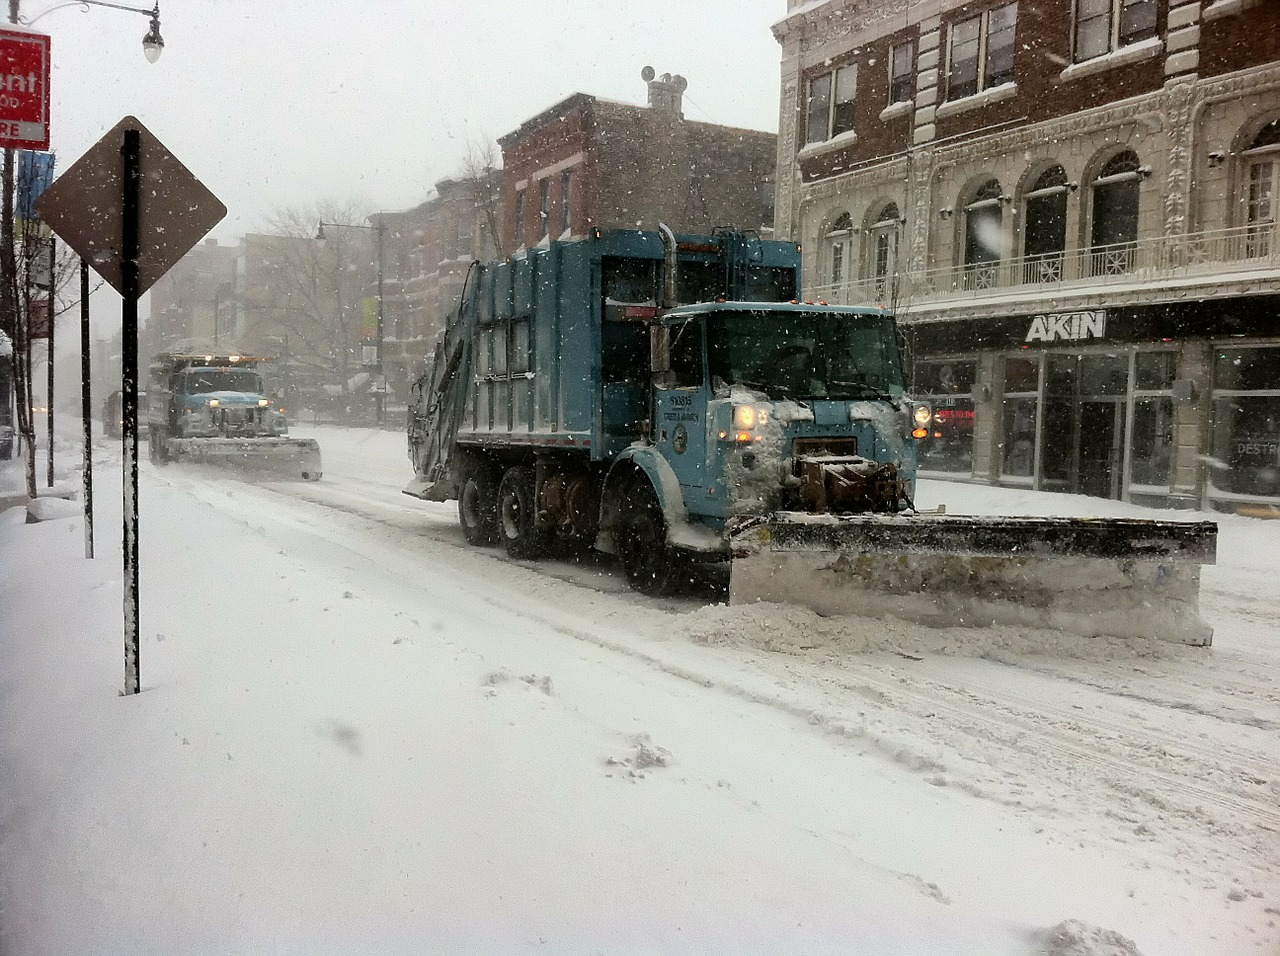 Snowplow on Chicago streets in blizzard